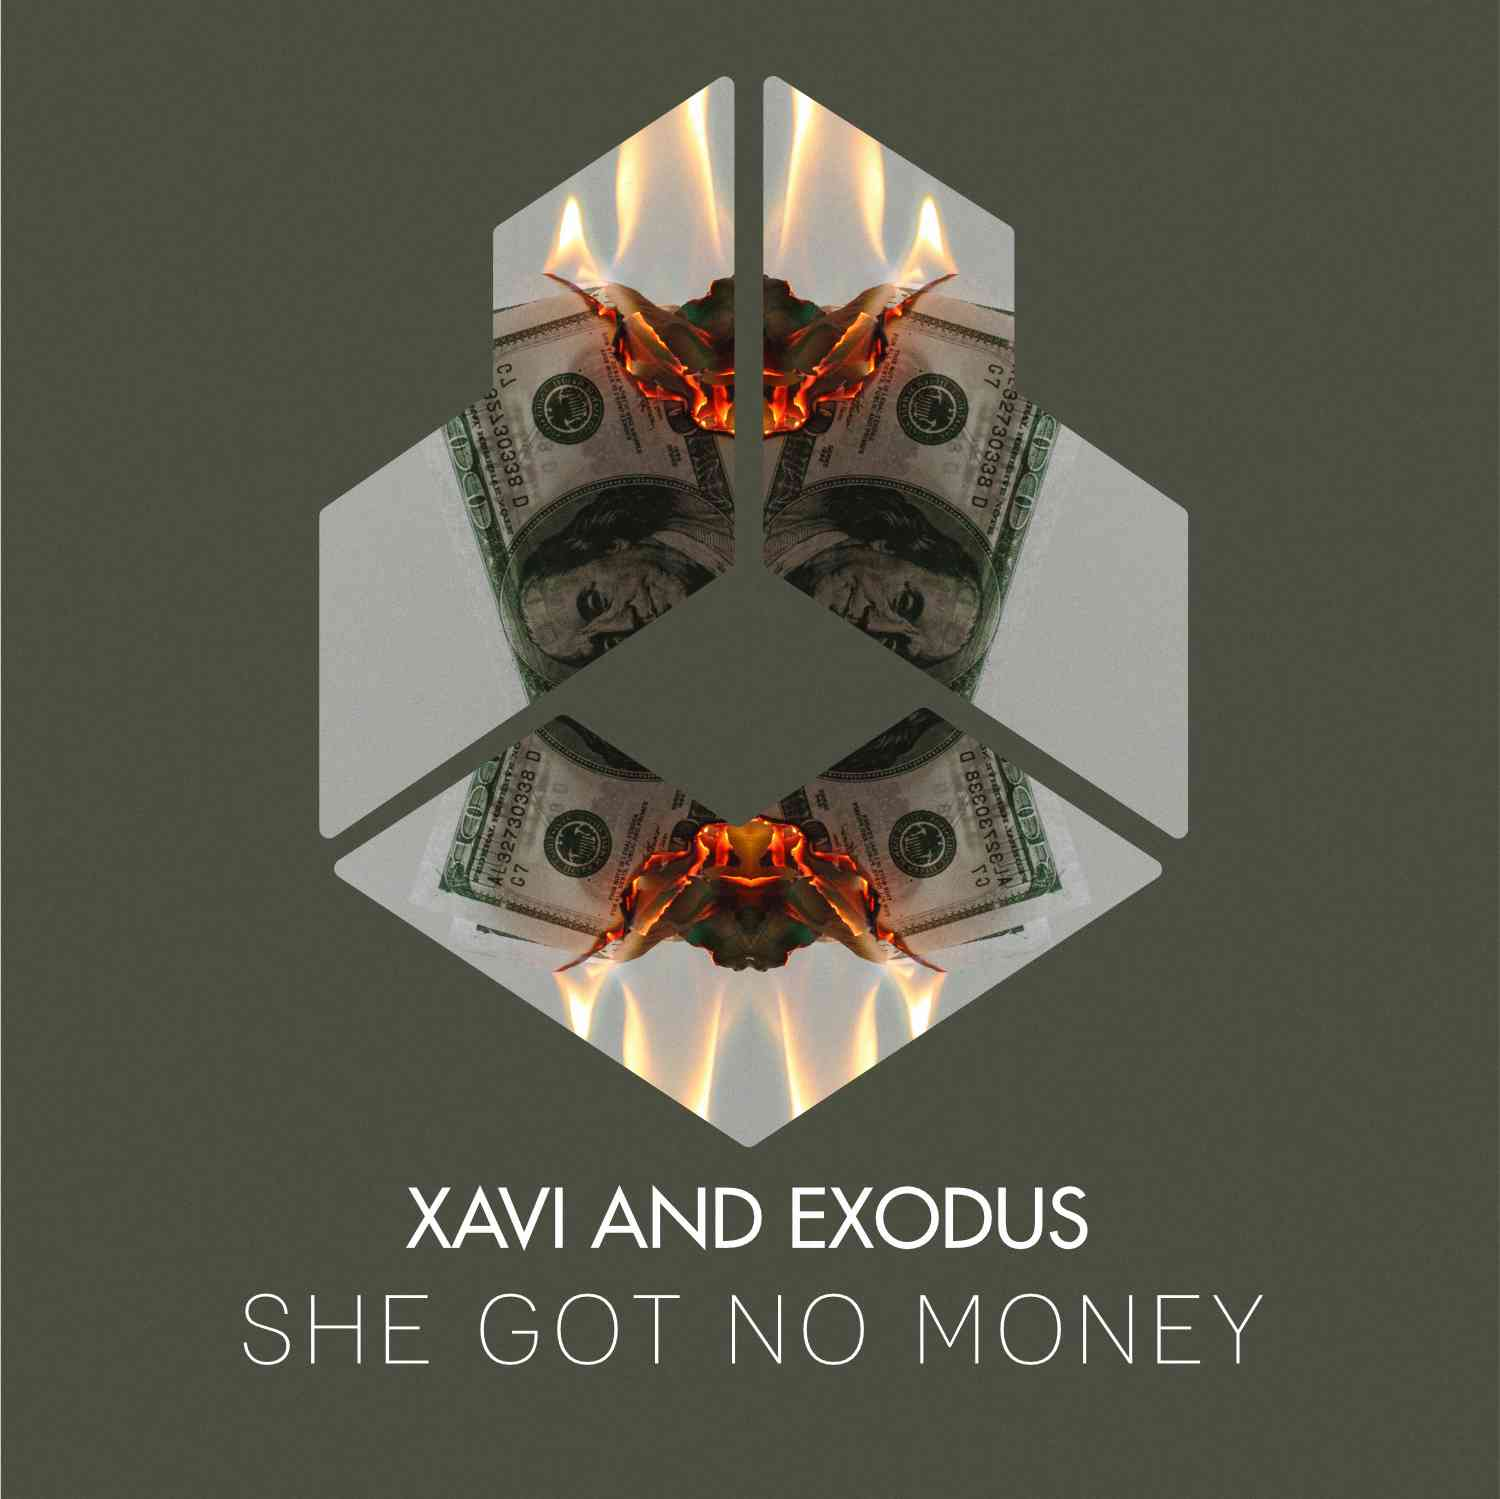 Xavi and Exodus - She Got No Money [Official Music Video]